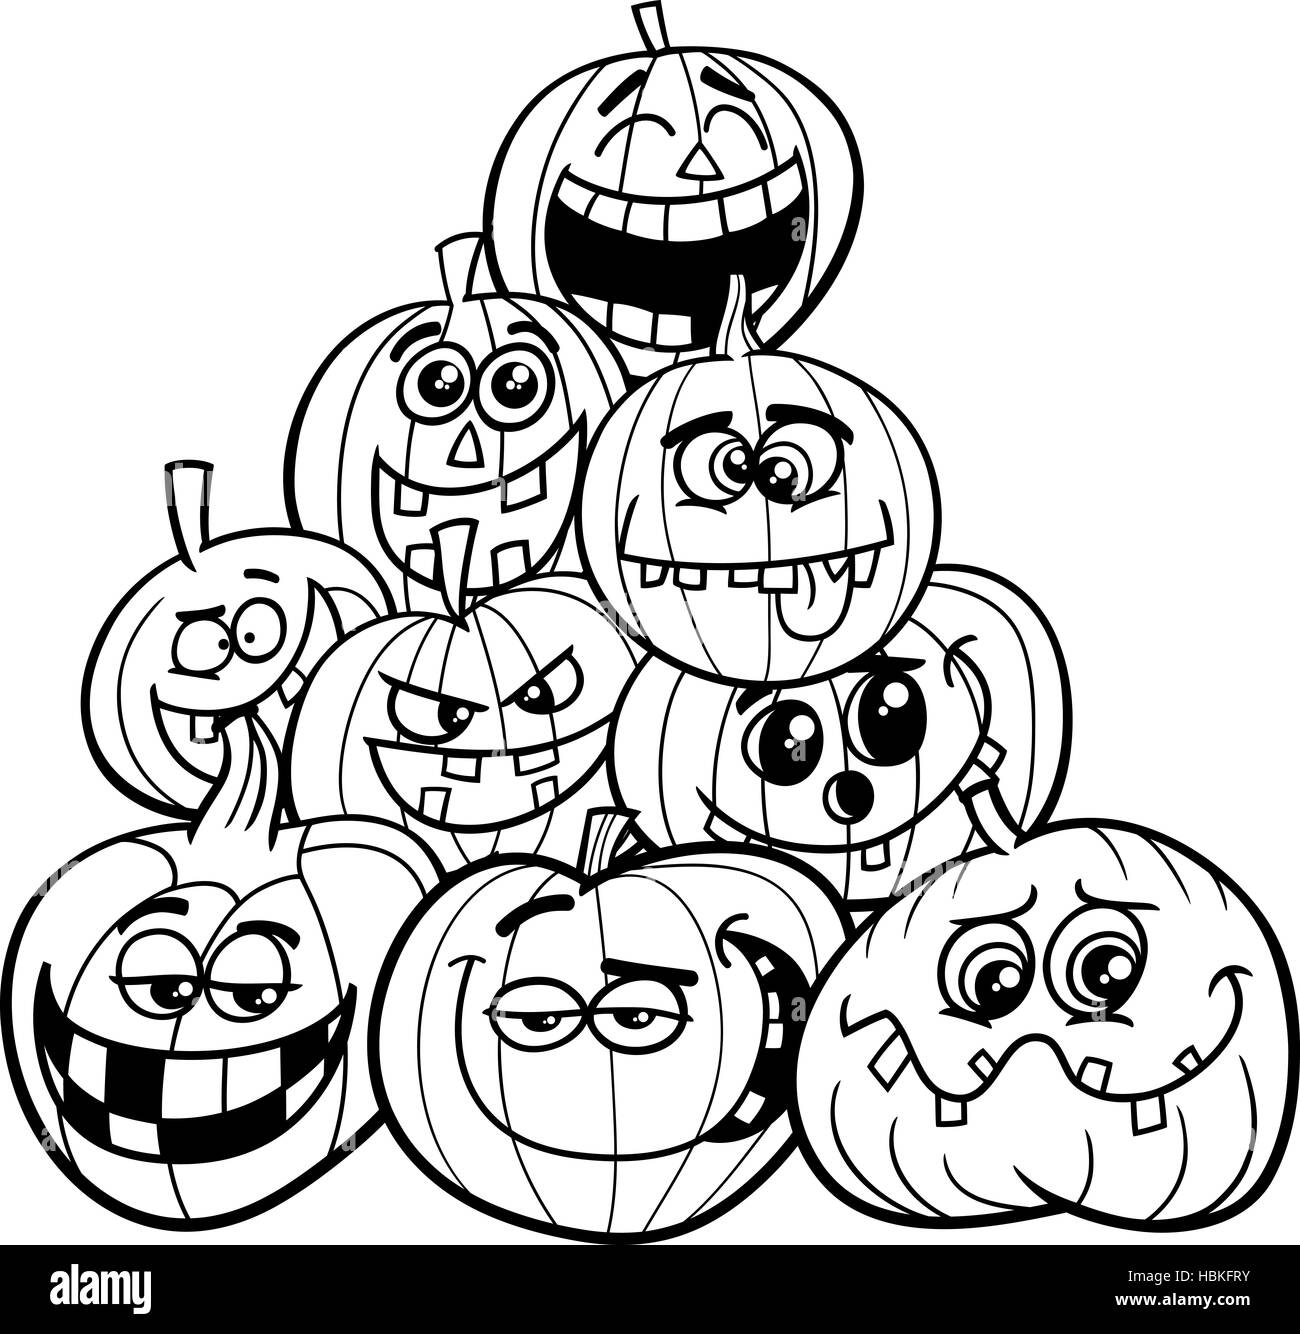 Halloween Pumpkins Coloring Page Stock Photo 127663311 Alamy